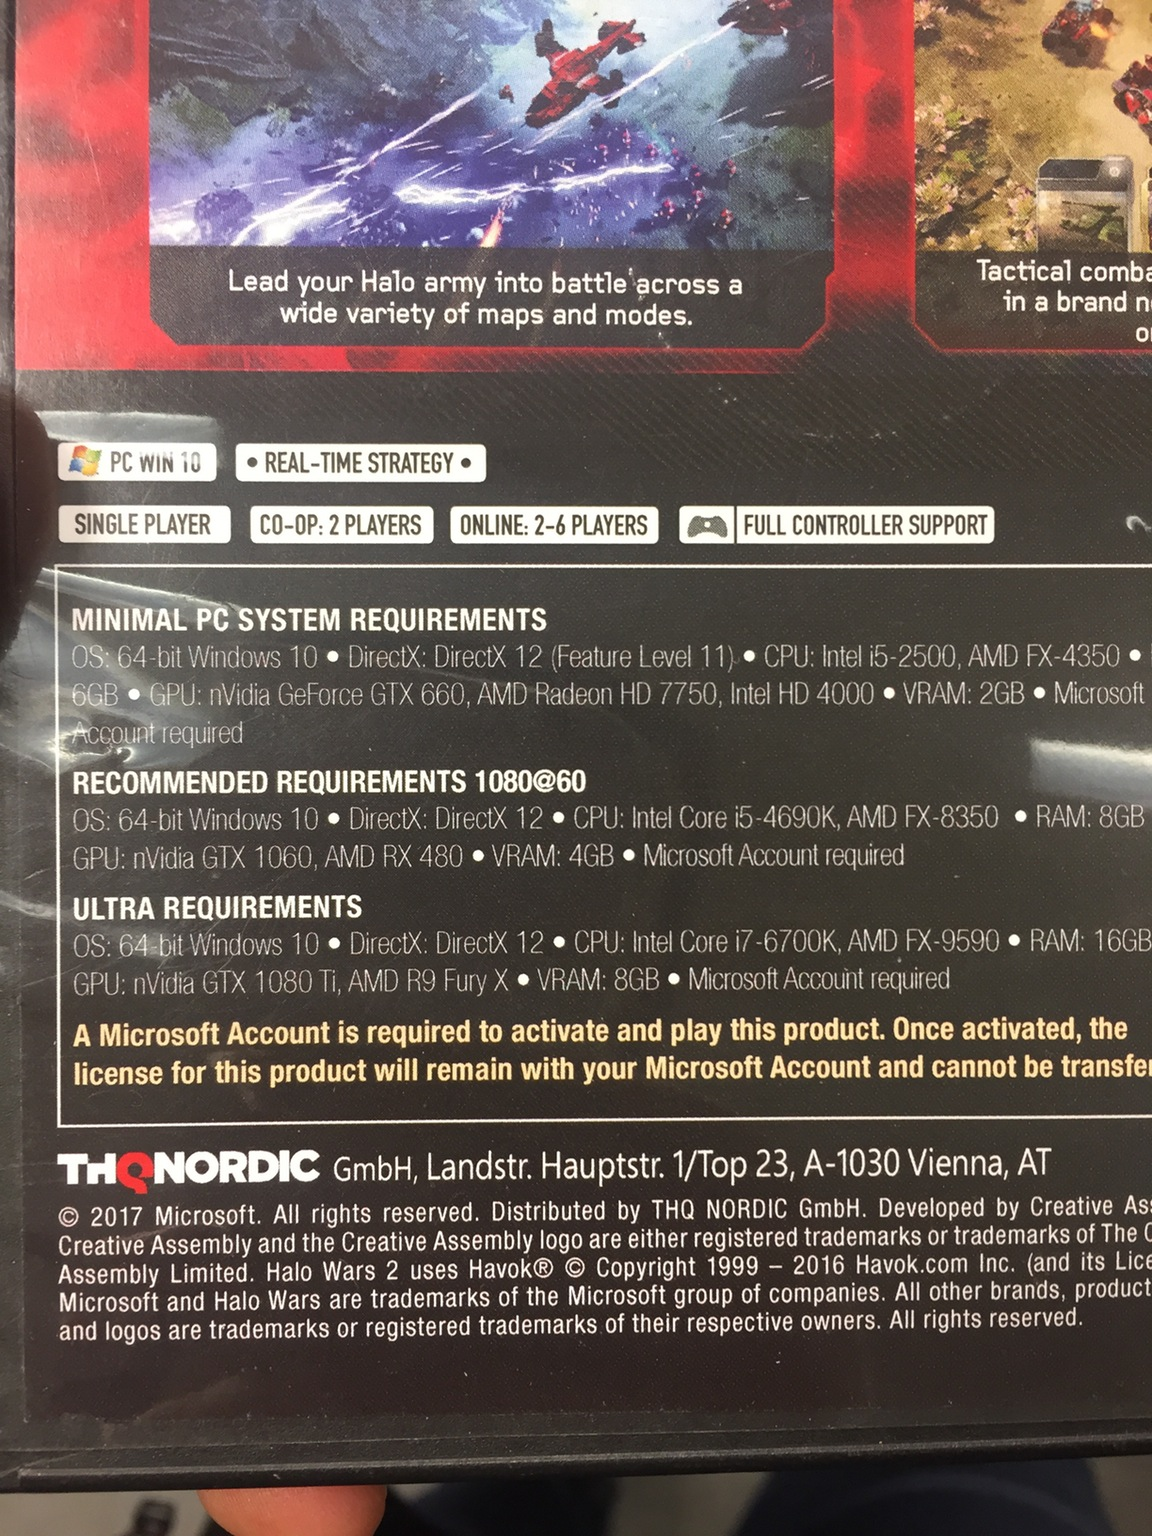 GTX 1080 Ti teased in Halo Wars 2 official requirements